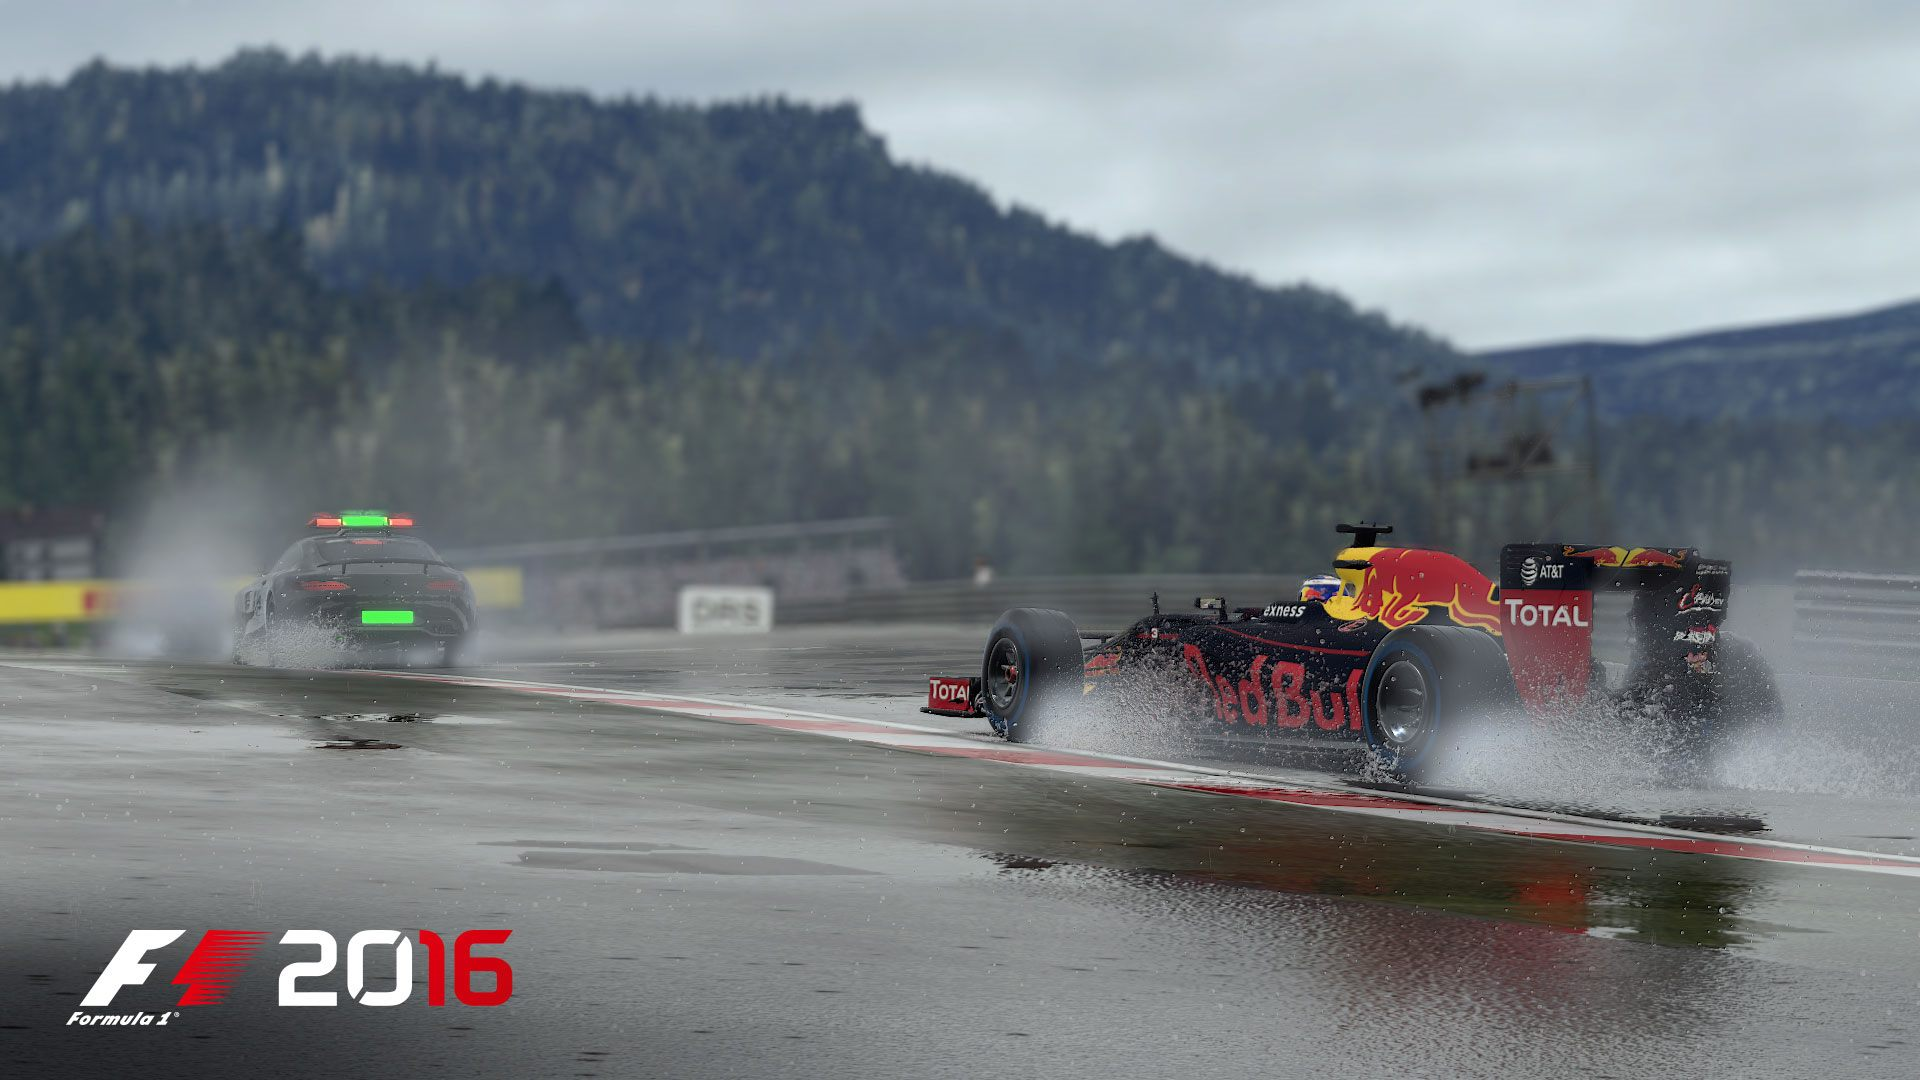 F1 2016 wet screenshot